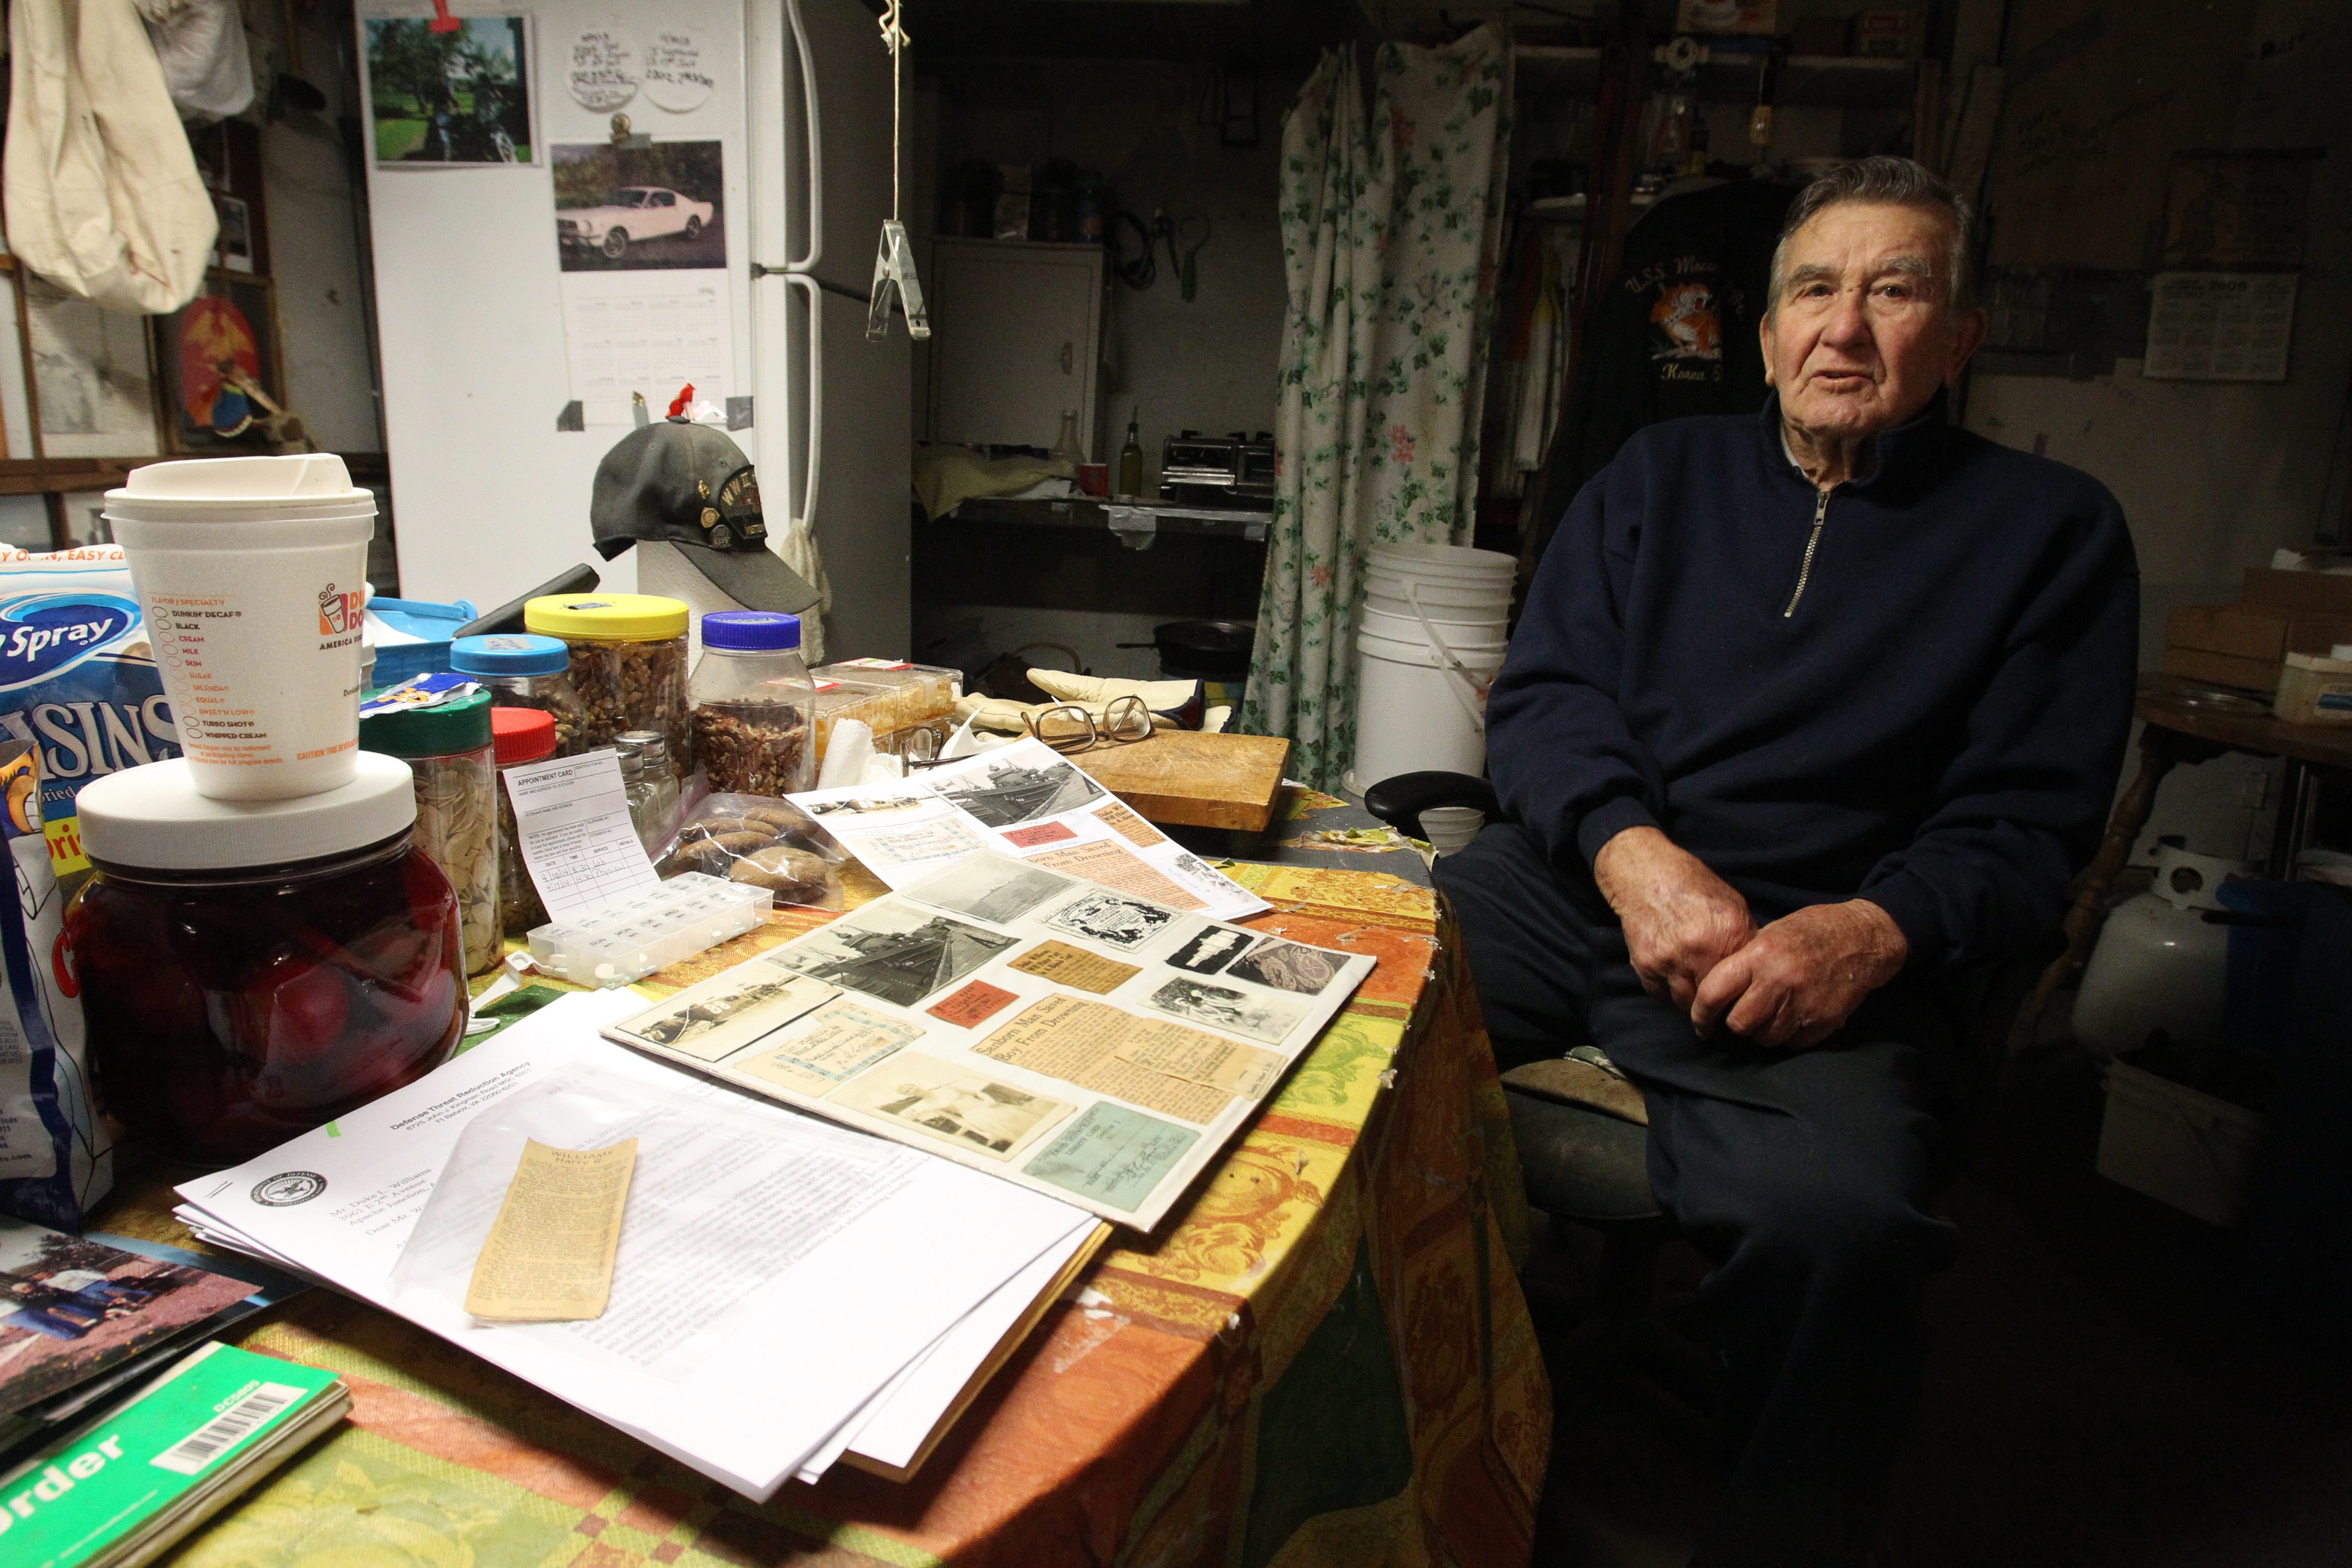 Duke L. Williams revisits a scrapbook, evoking wartime memories, at his Lewiston home near the Manhattan Project storage facility.